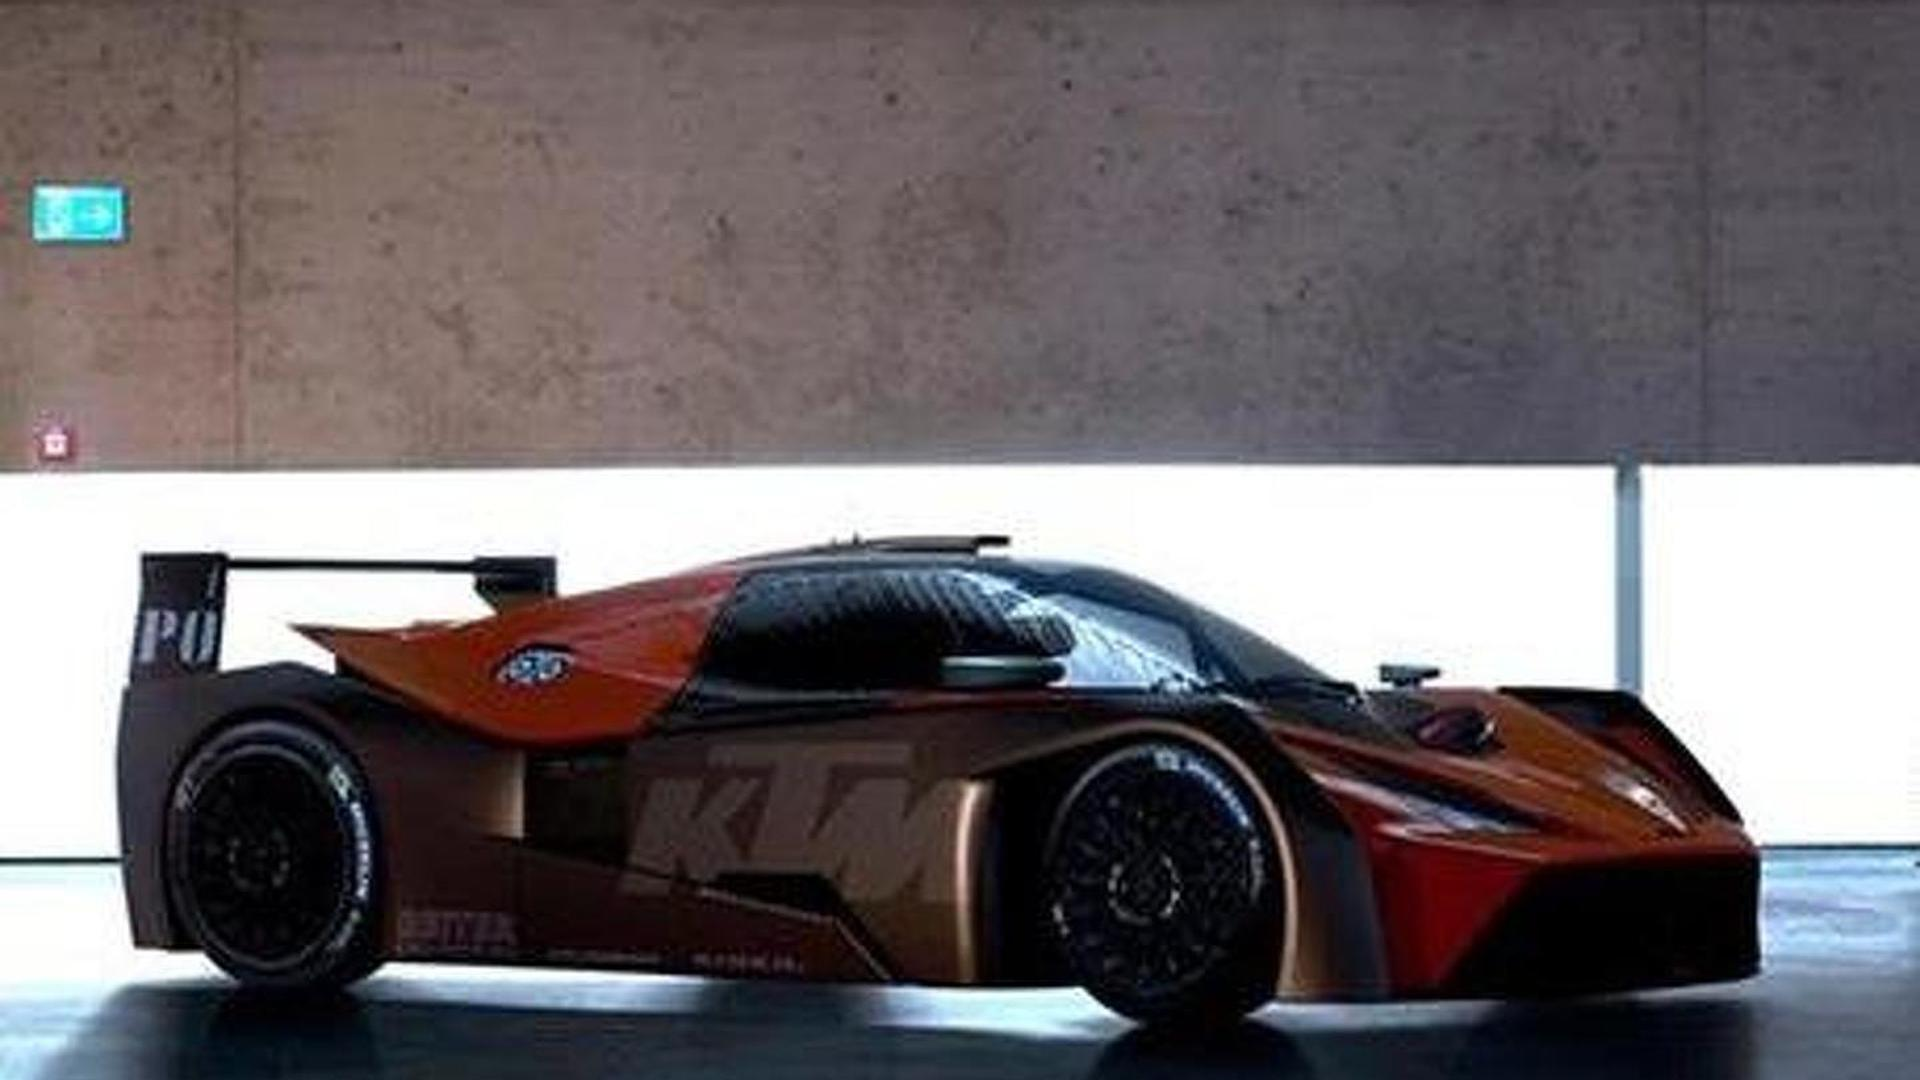 KTM X BOW GTR previewed costs €139 000